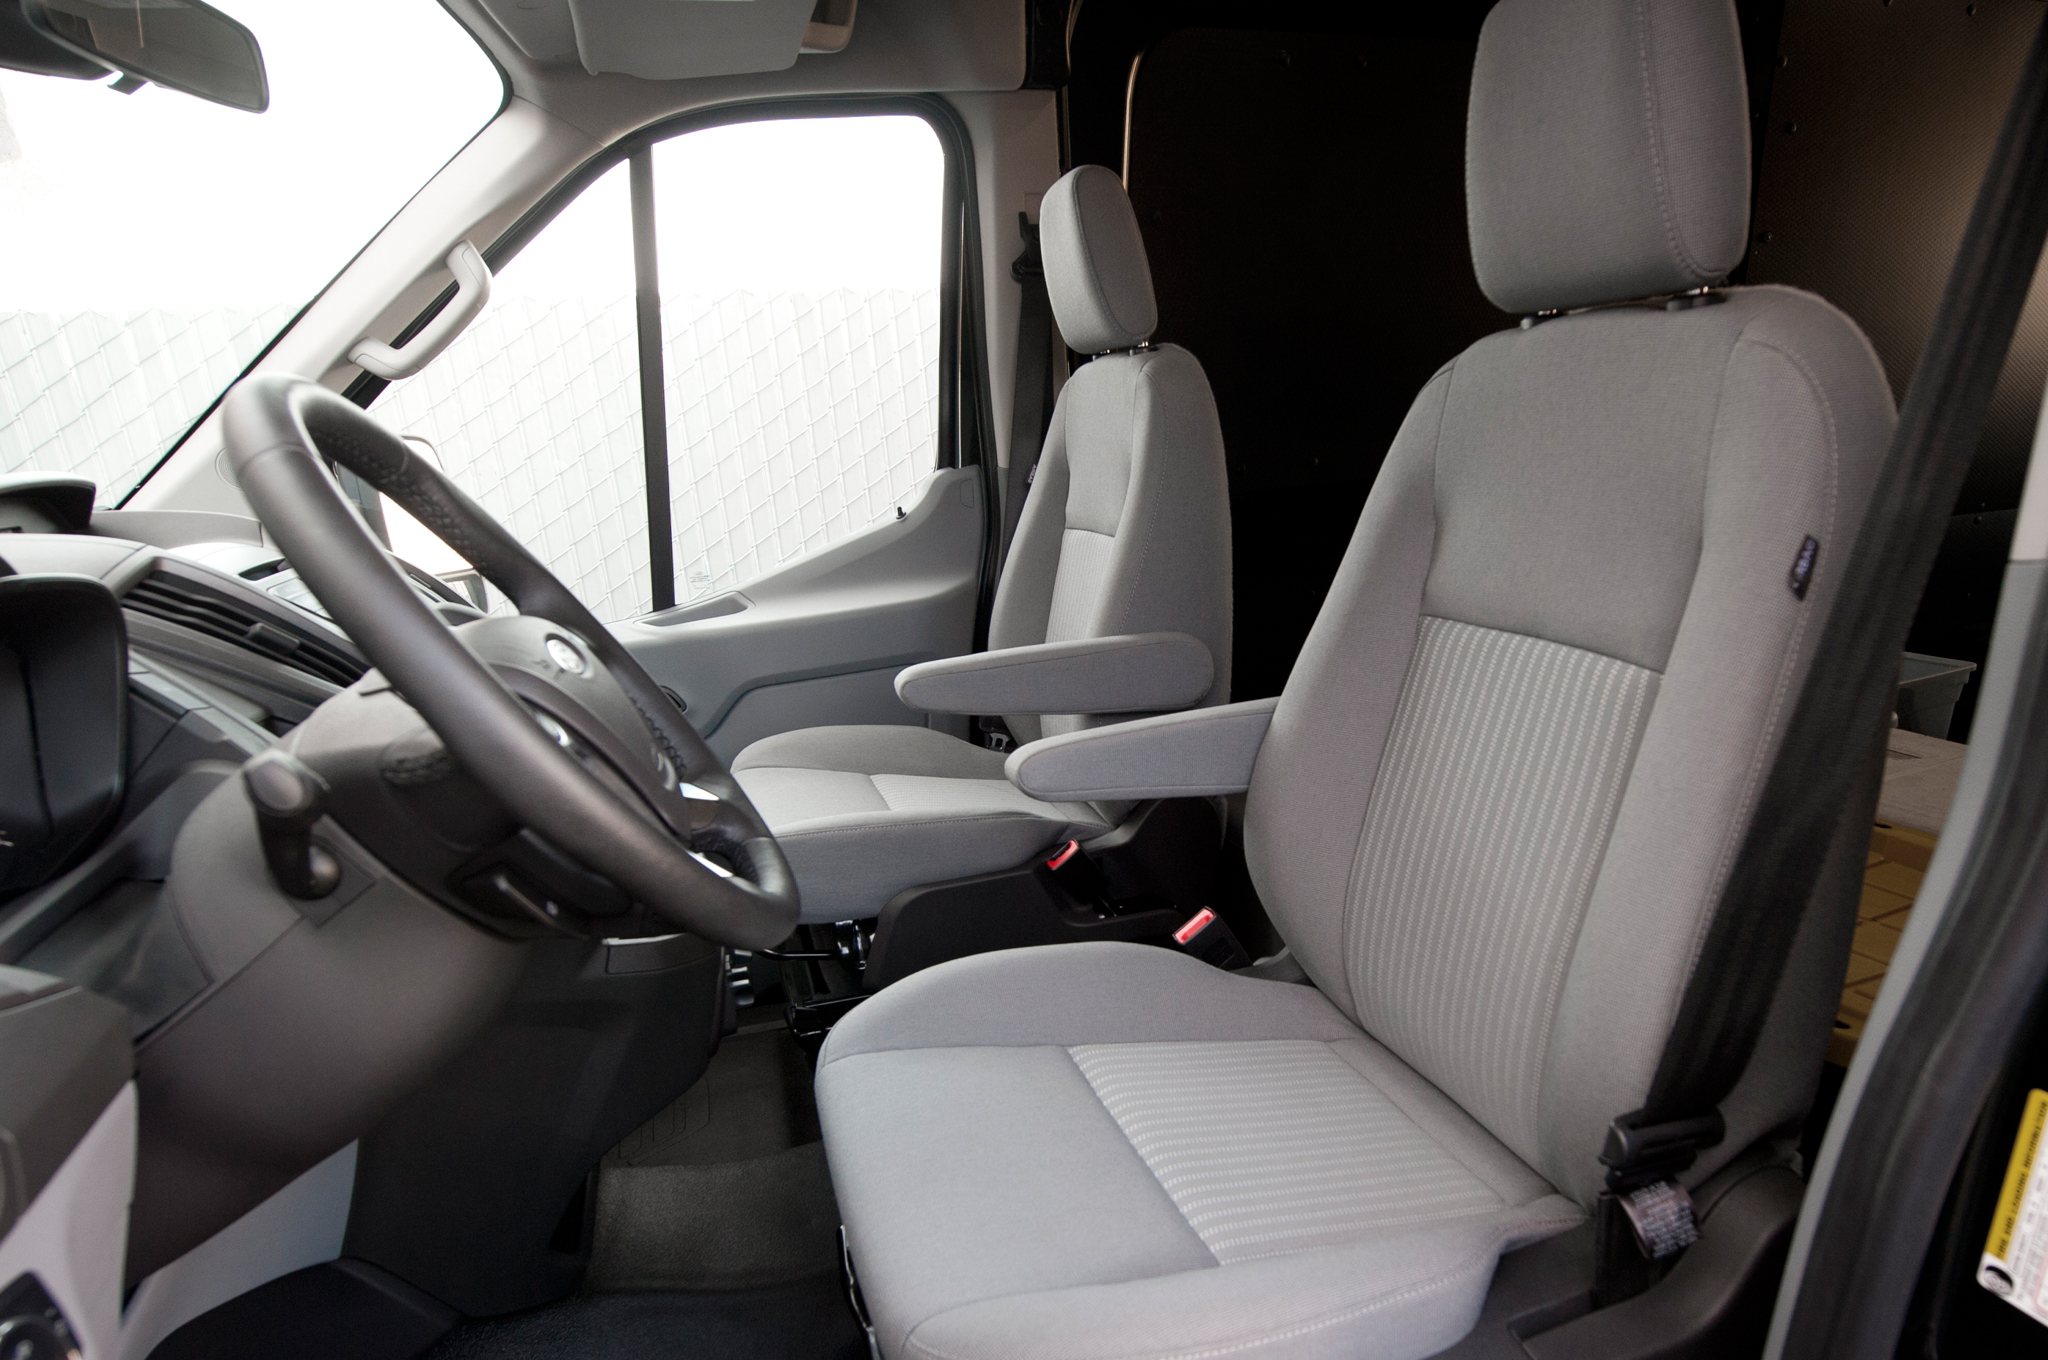 2015 Ford Transit 150 350hd Seats Interior (View 9 of 13)